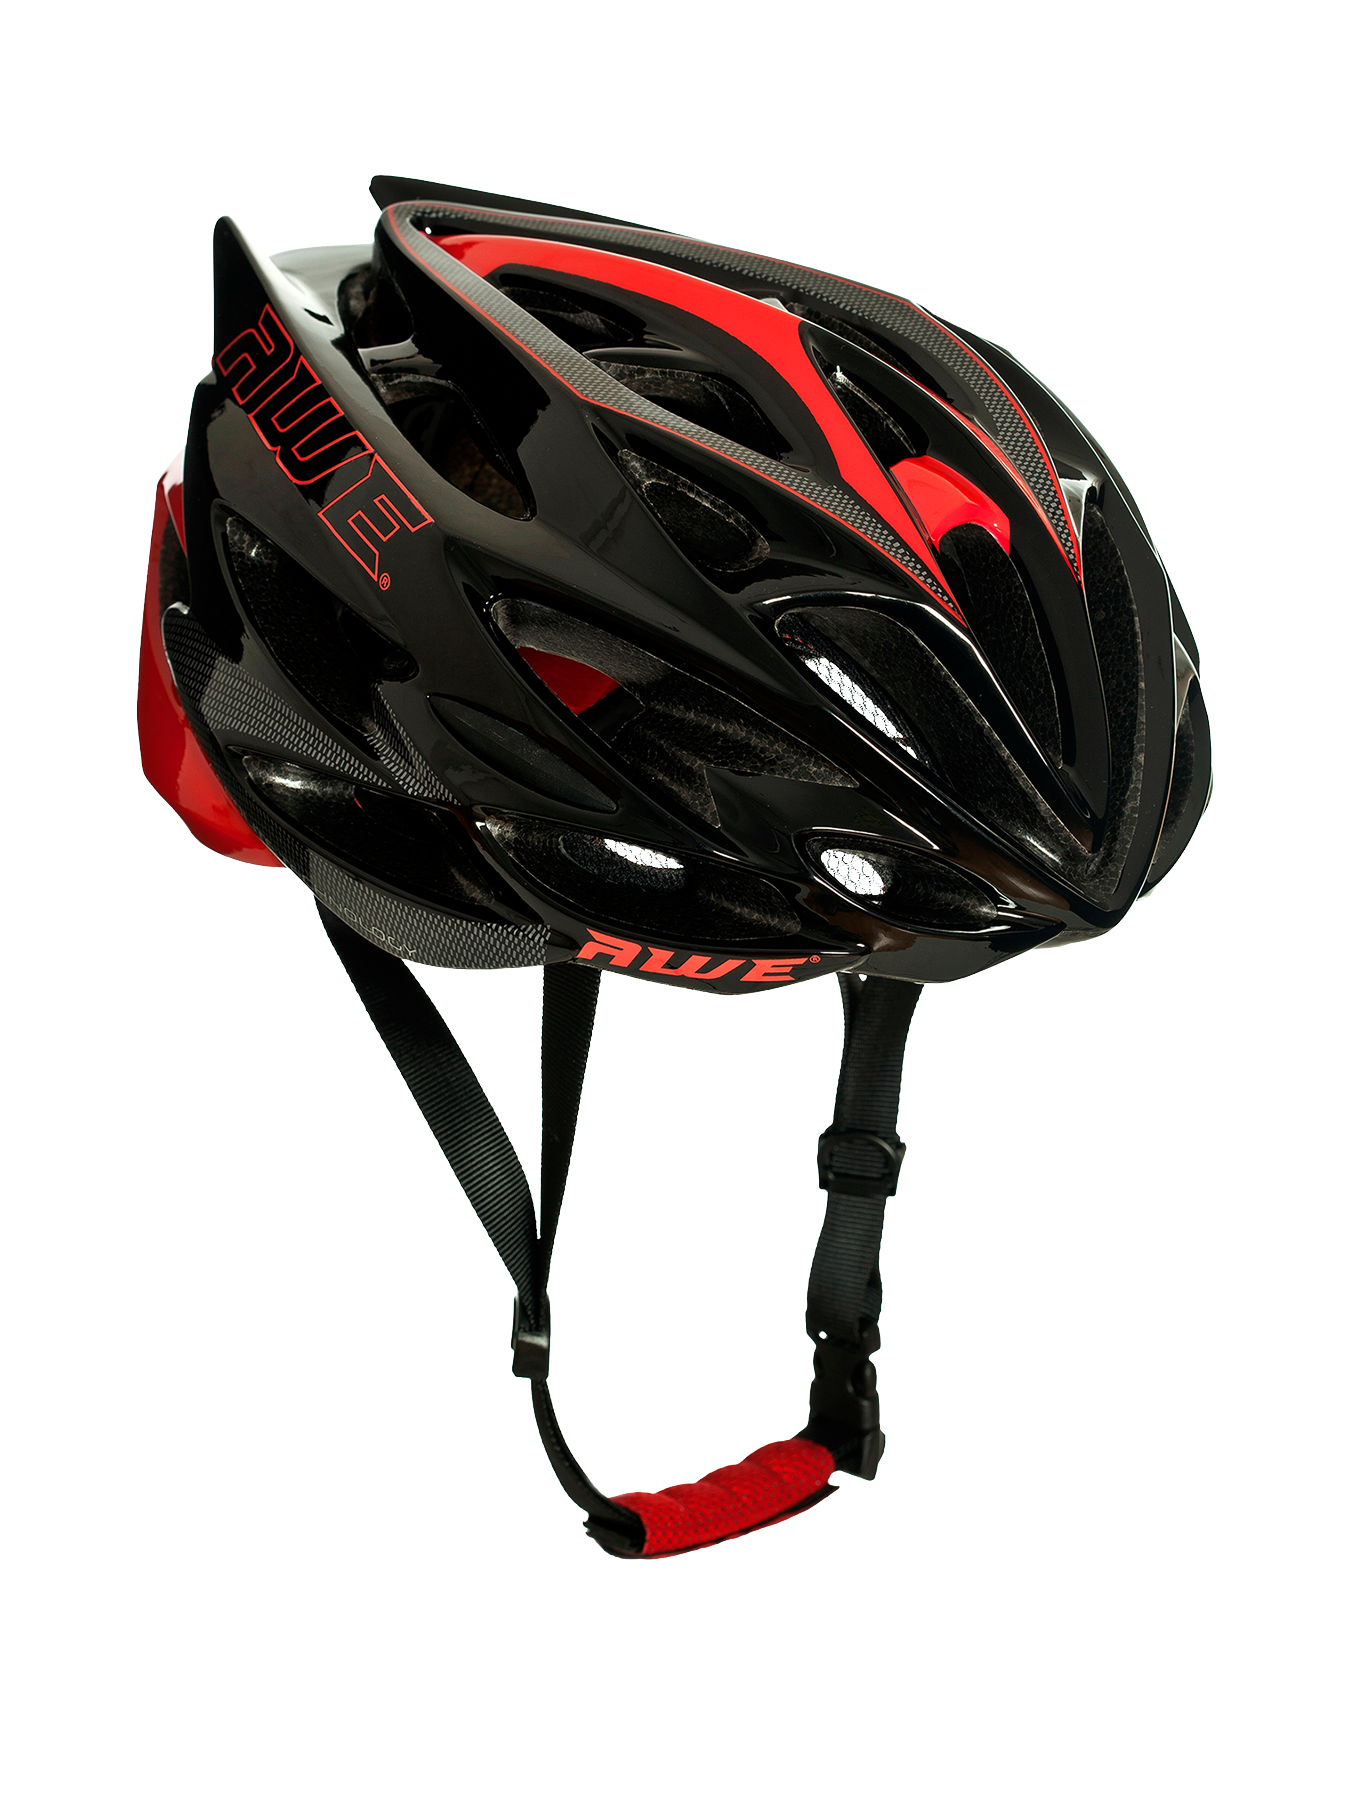 Awe Awespeed Trade In Mould Adult Road Cycling Helmet 58 62cm In